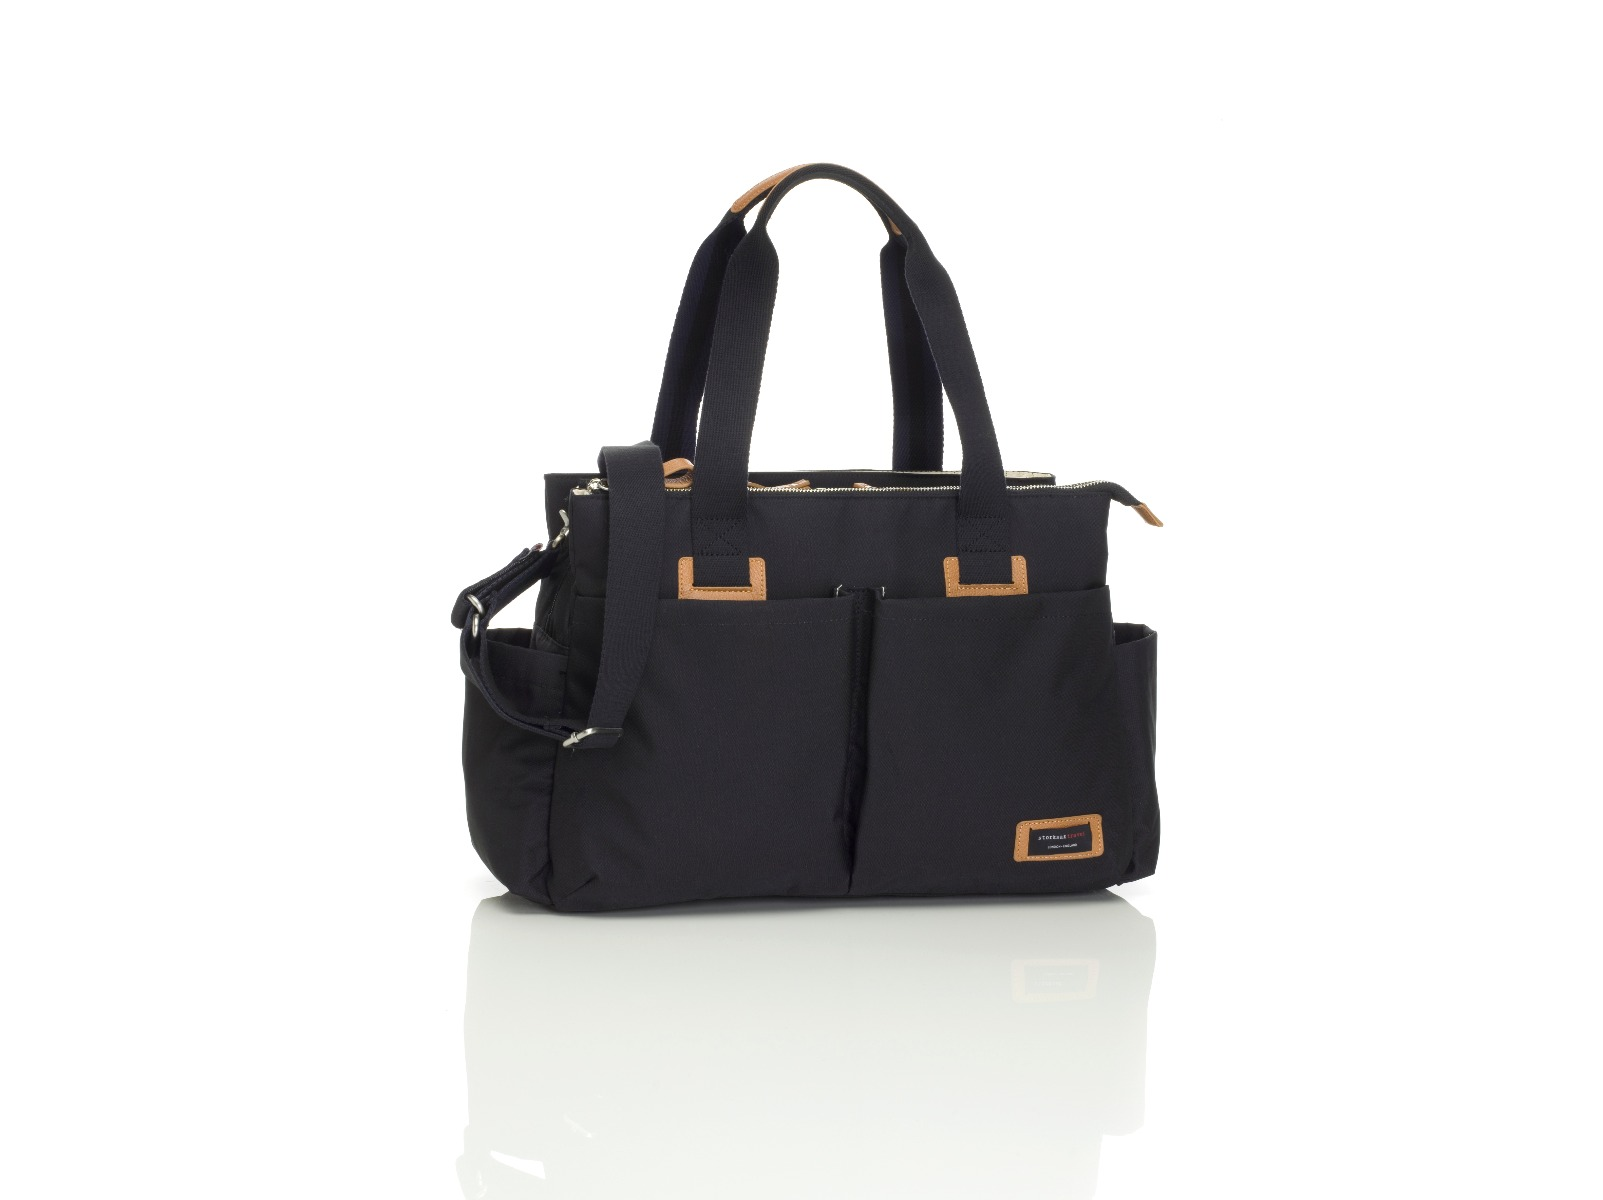 Storksak Shoulder Bag Black